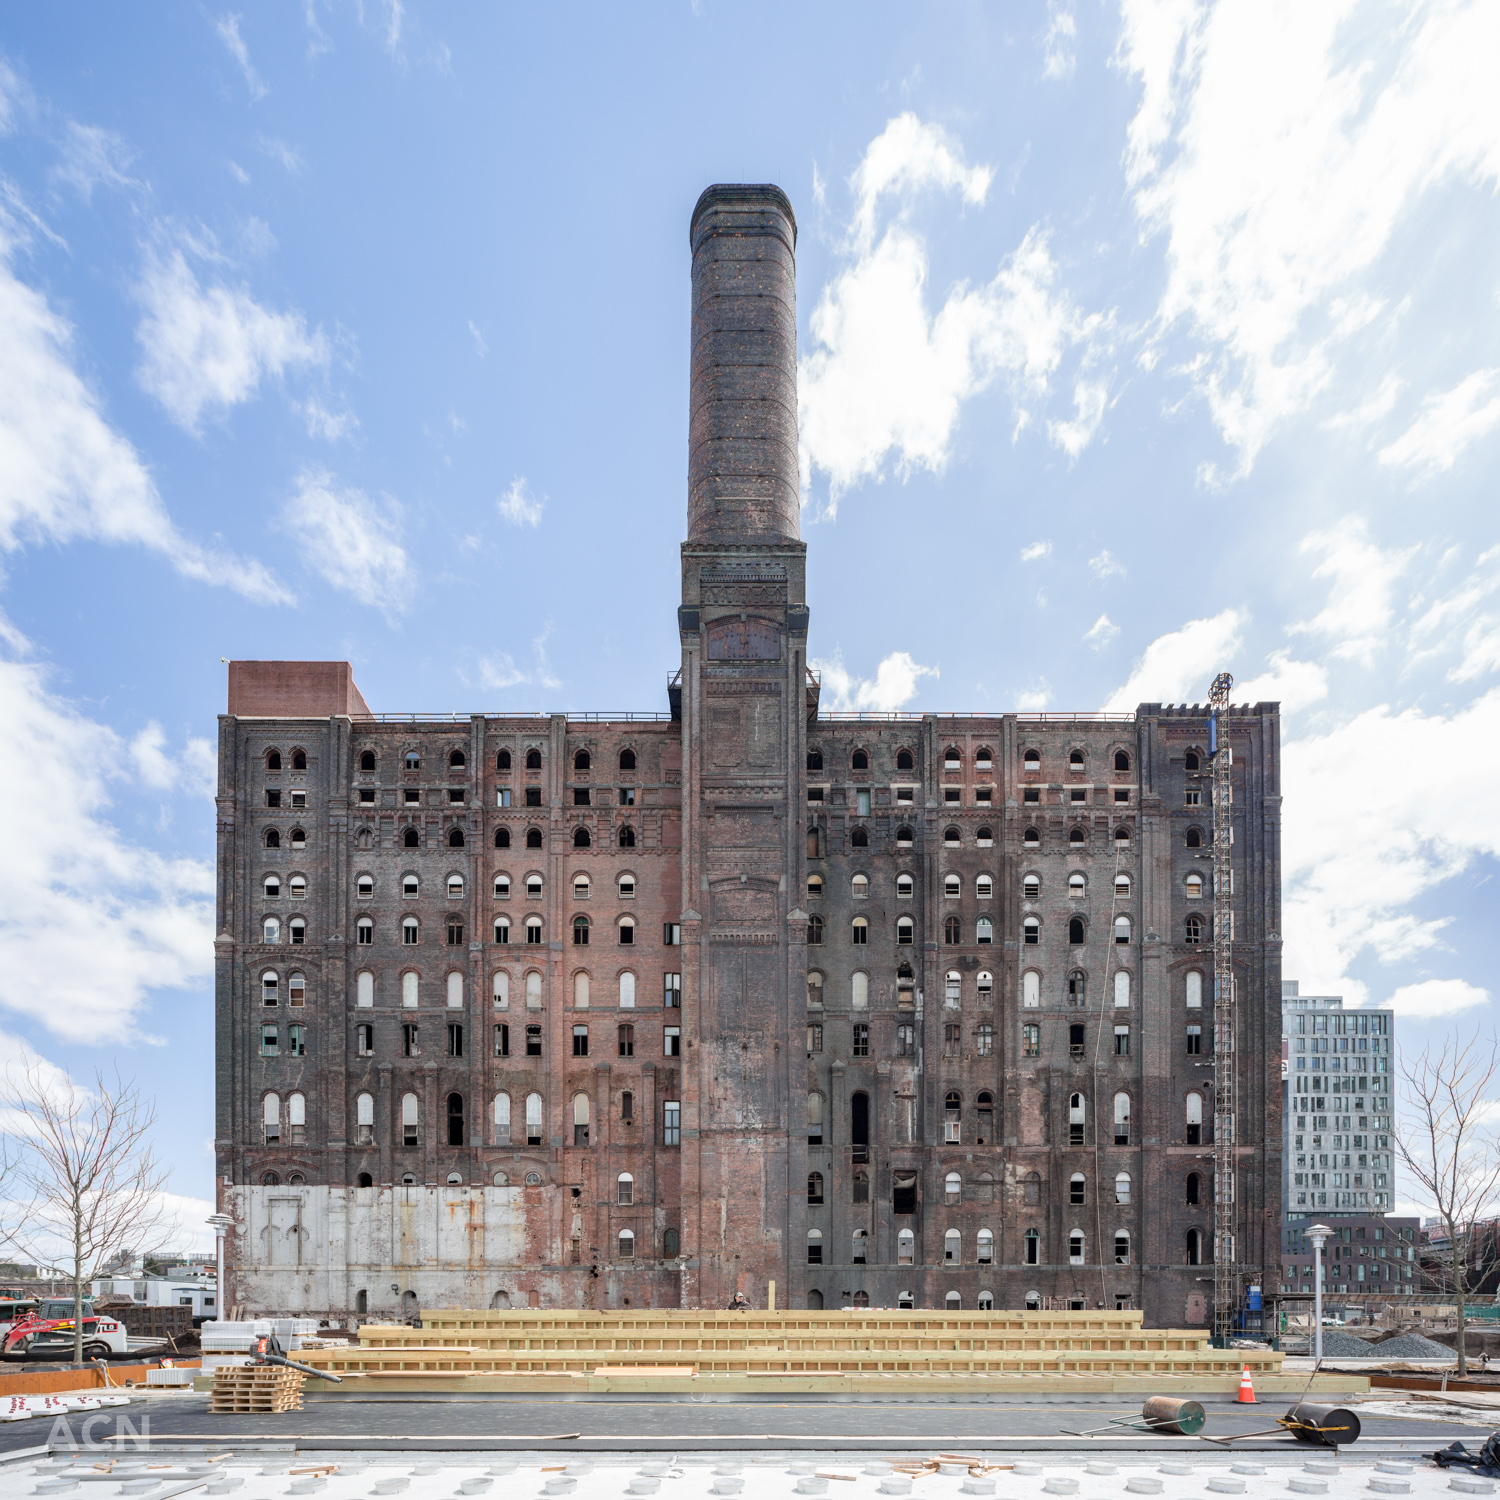 Domino Sugar Refinery, image by Andrew Campbell Nelson